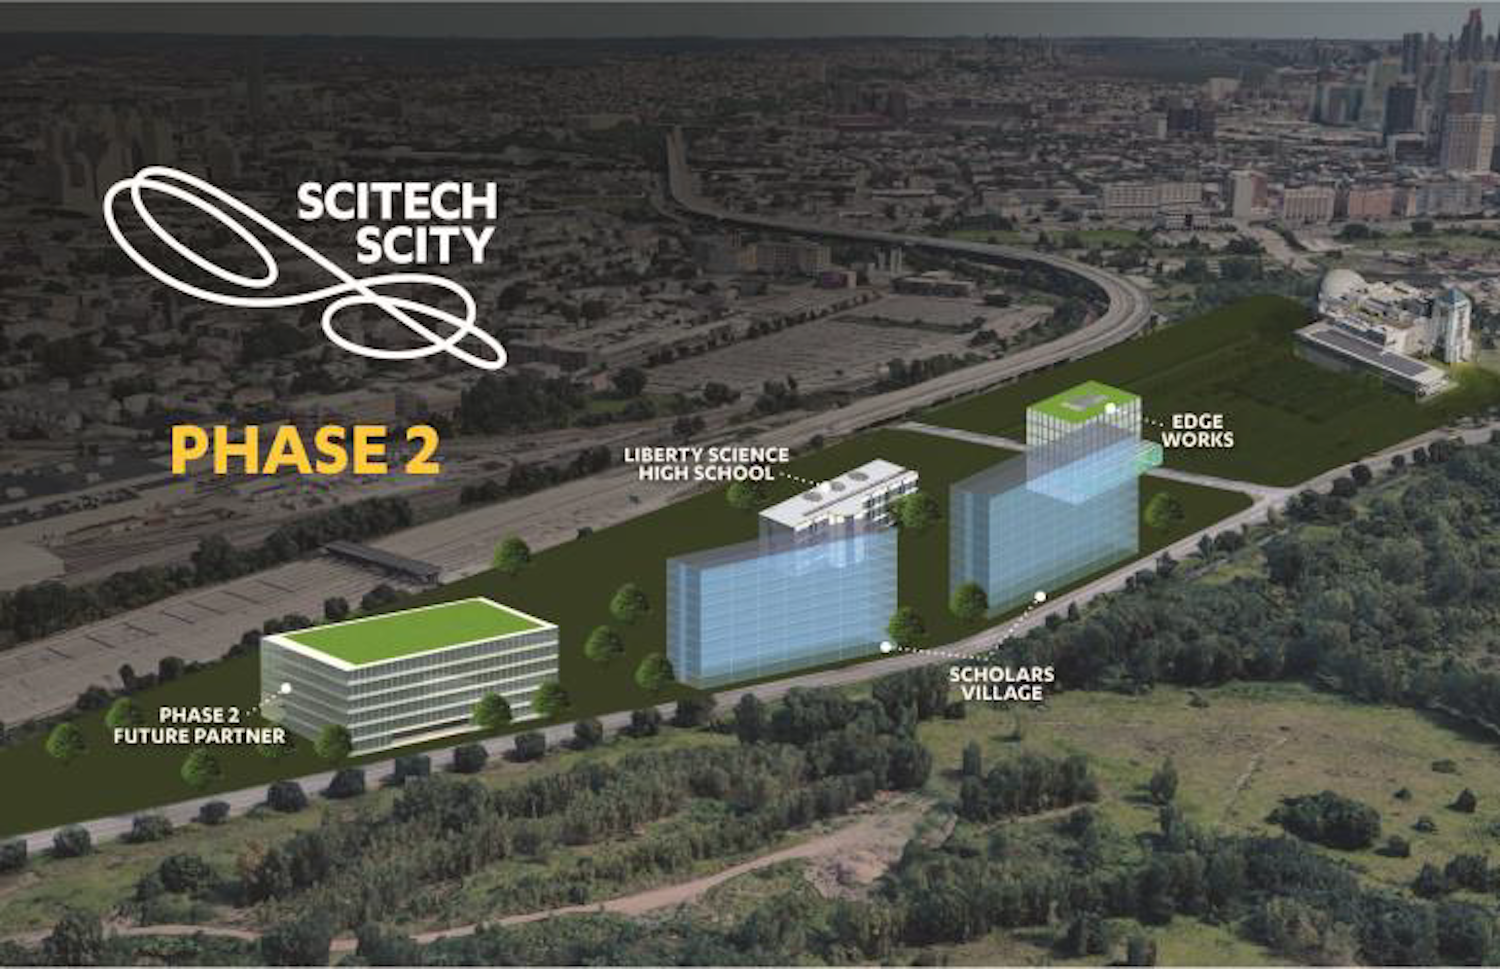 Phase Two of SciTech Scity in Jersey City